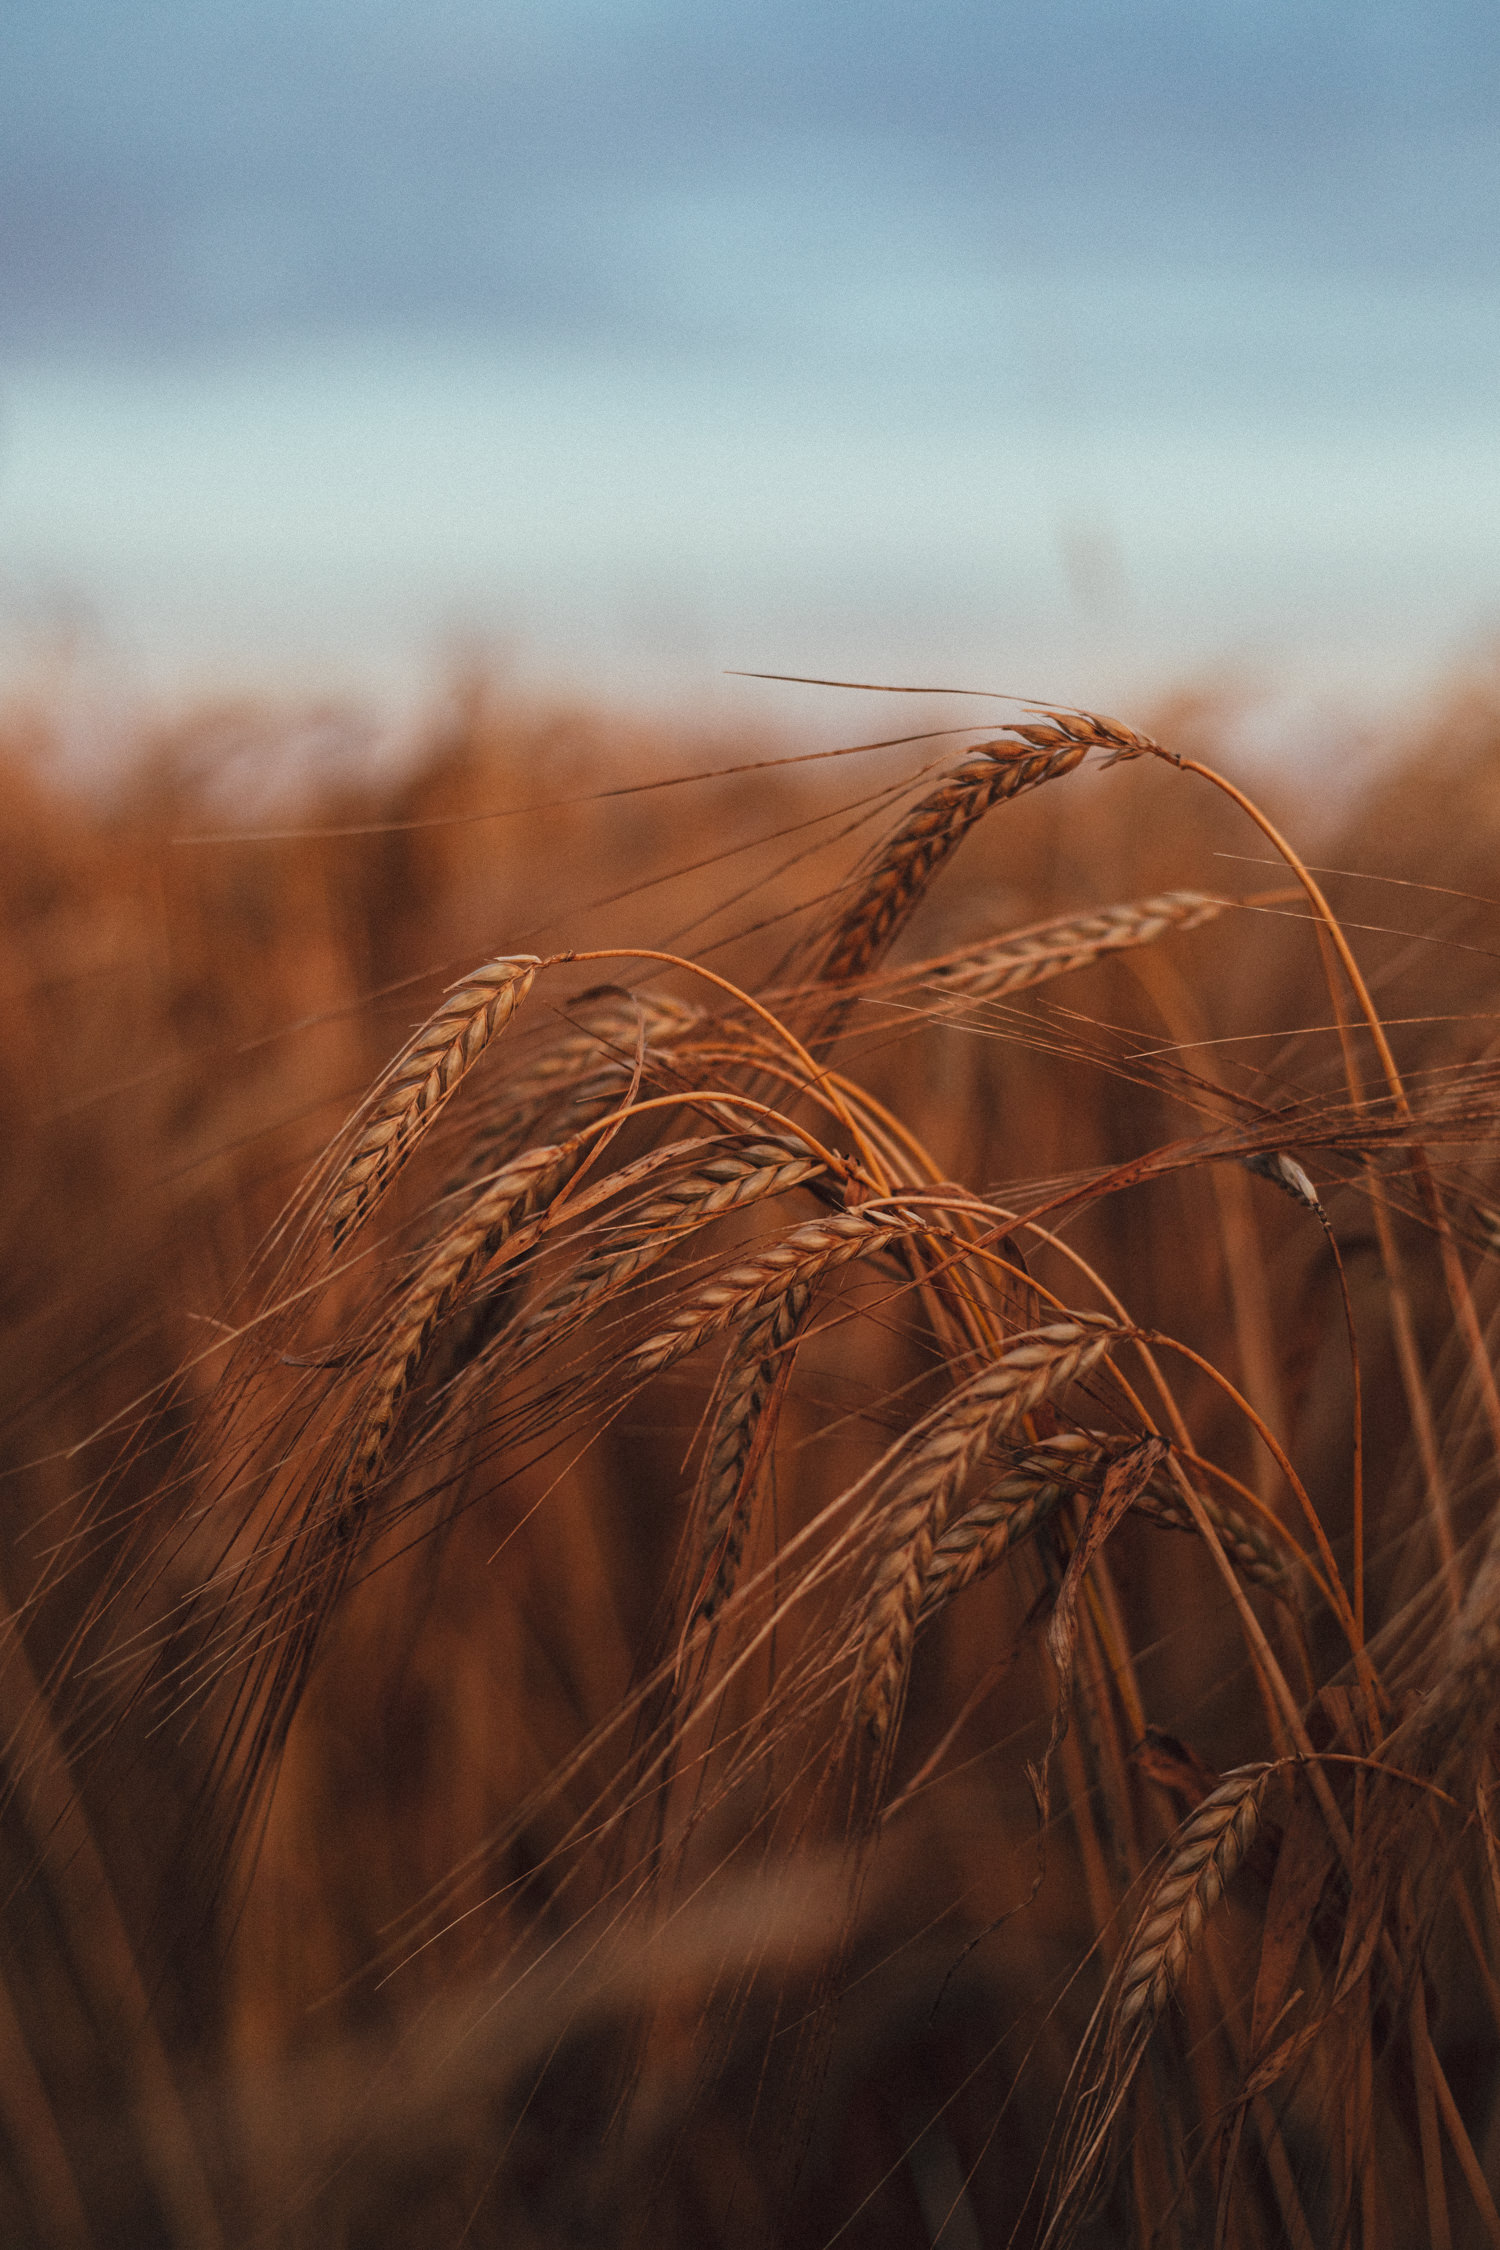 barley, barley field, summer, harvest, guest by the fire, fireside chats, Holsome Park Wedding Photography